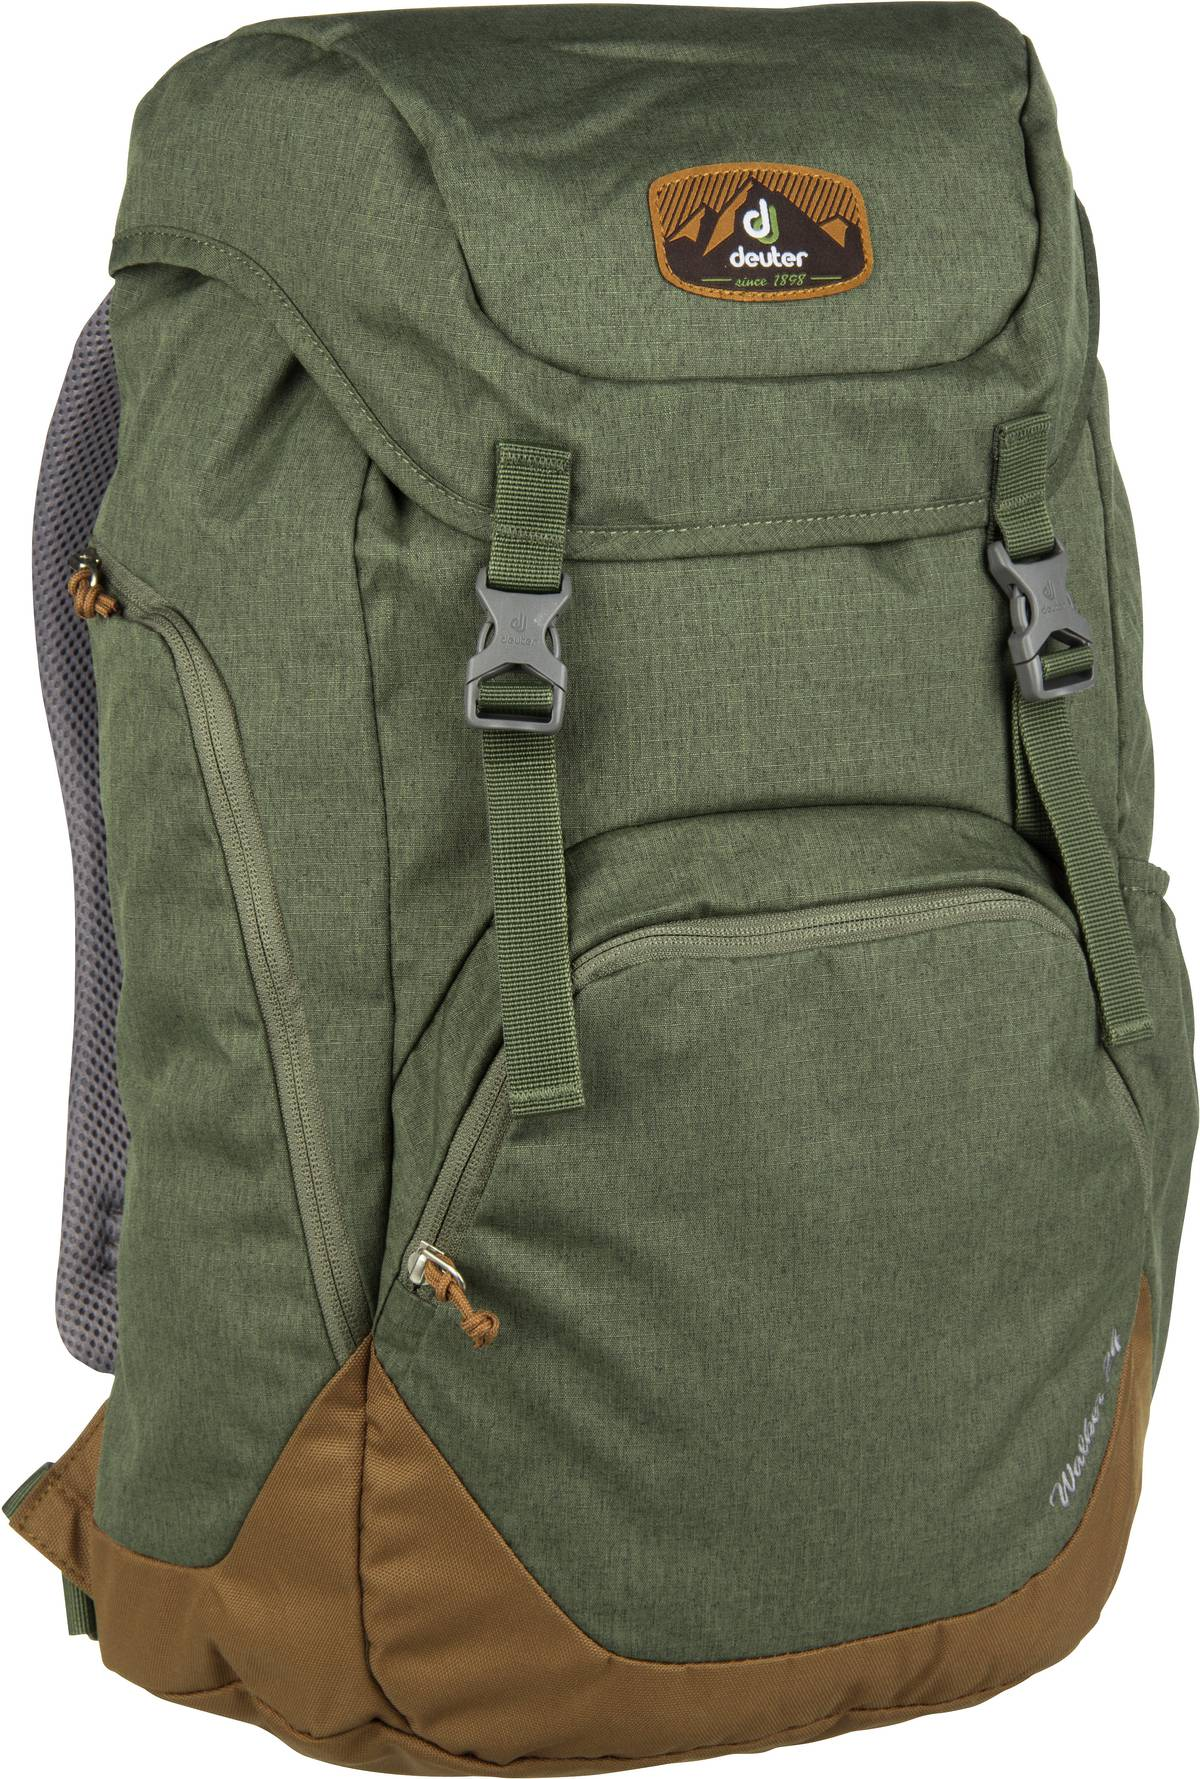 Laptoprucksack Walker 24 Khaki/Lion (24 Liter)